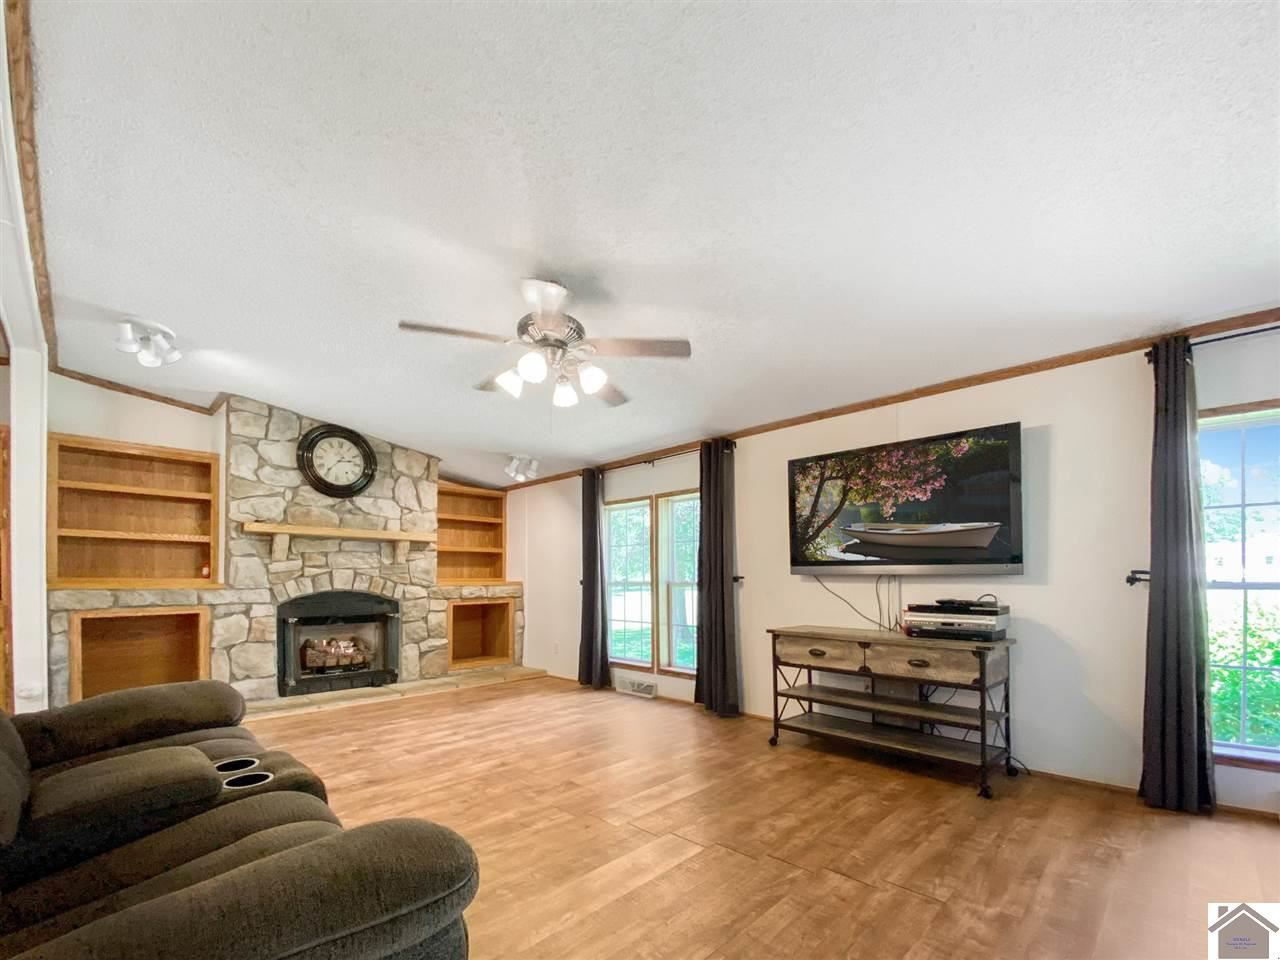 Property Image Of 1316 Starr Hil In Paducah, Ky